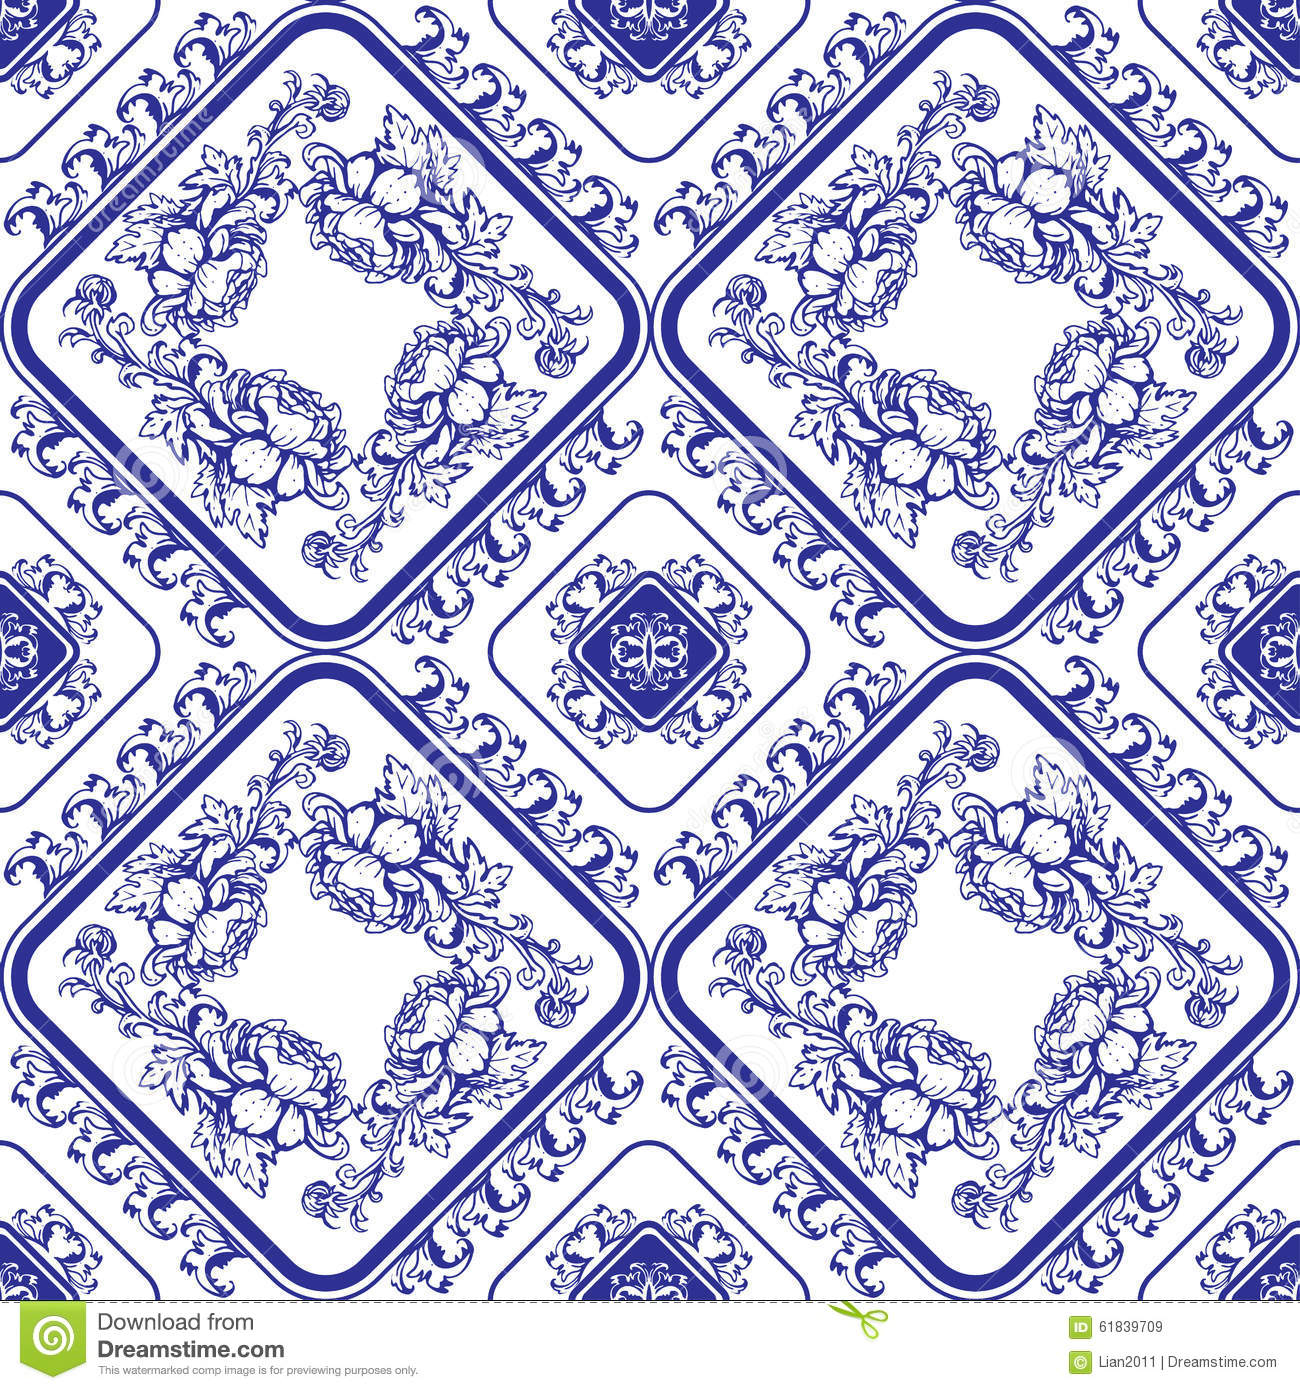 Seamless blue floral pattern. Background in the style of Chinese